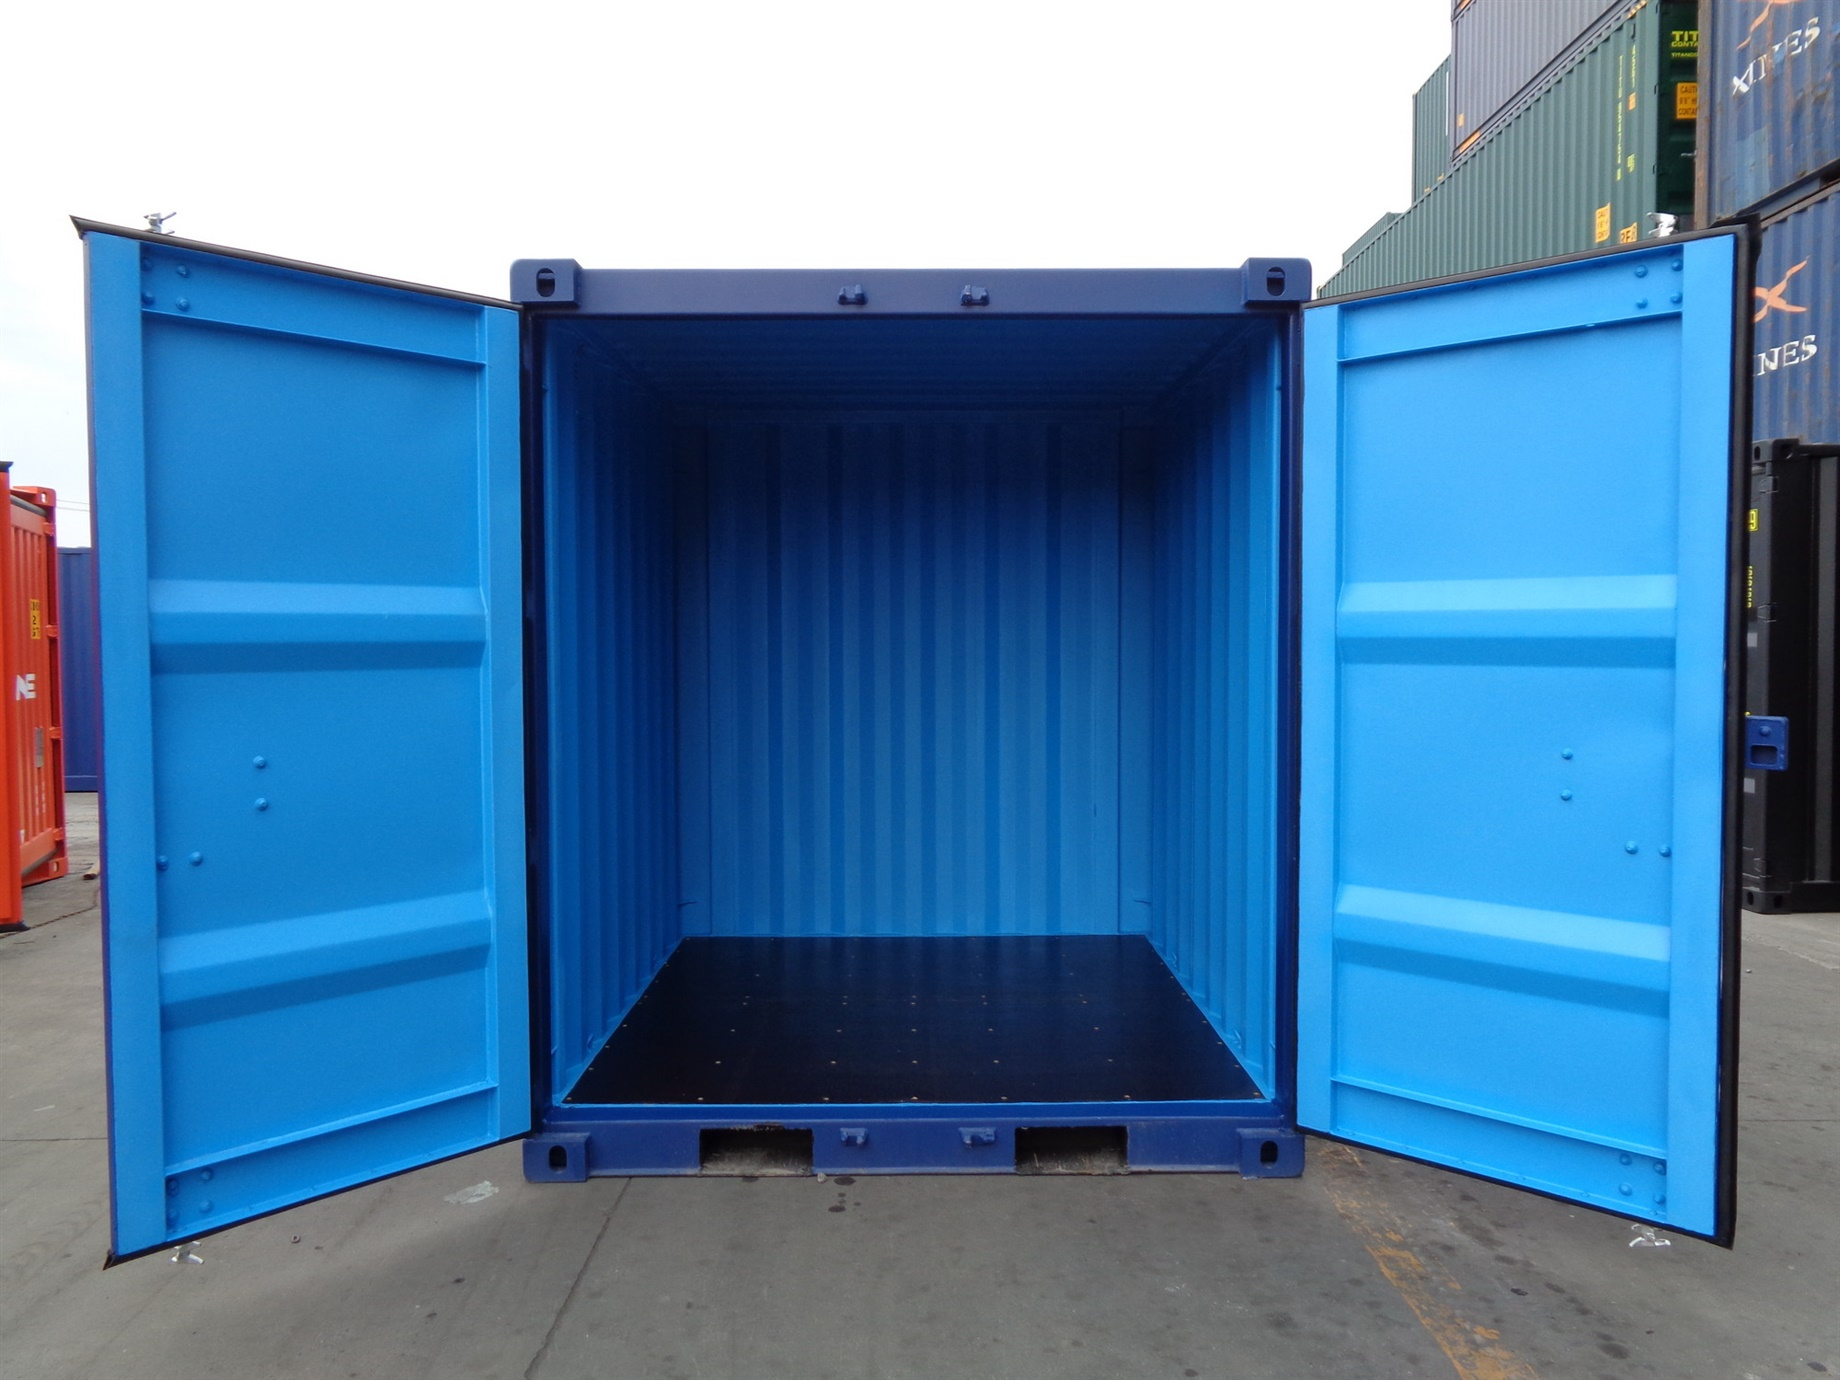 6 8 10 blue doors open foot storage container TITAN Shiipping Containers